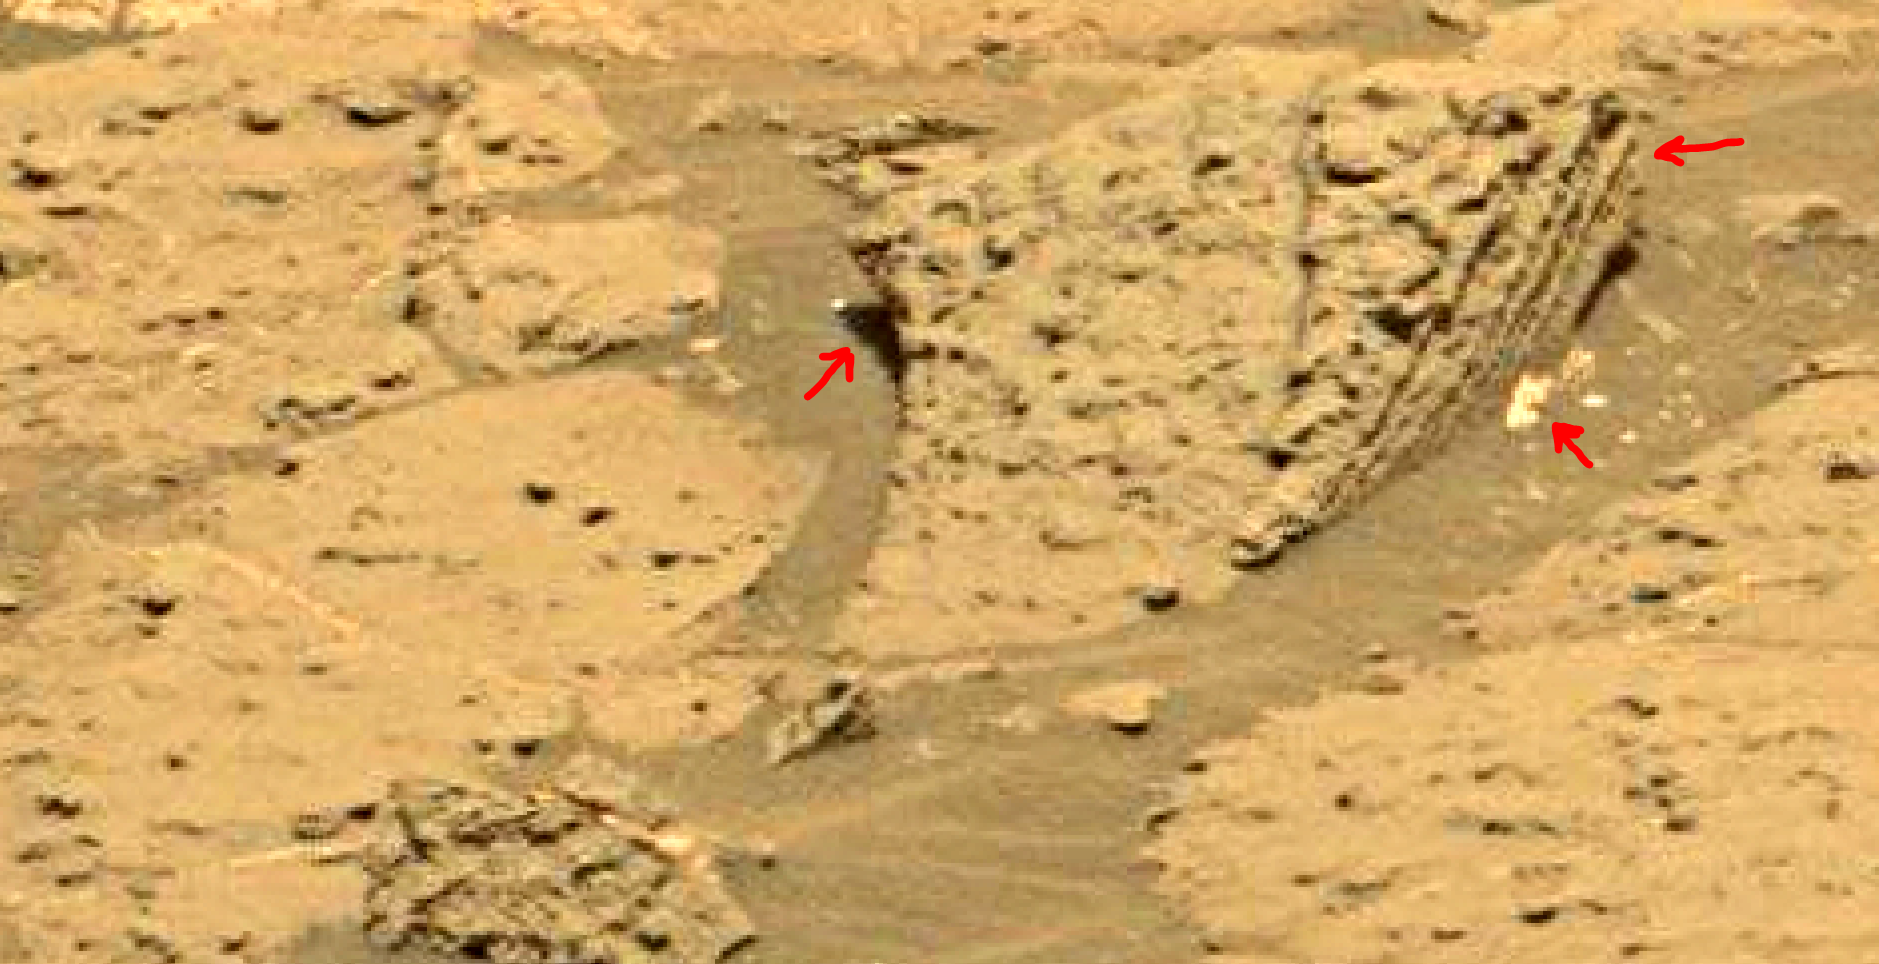 mars sol 1353 anomaly-artifacts 24a was life on mars